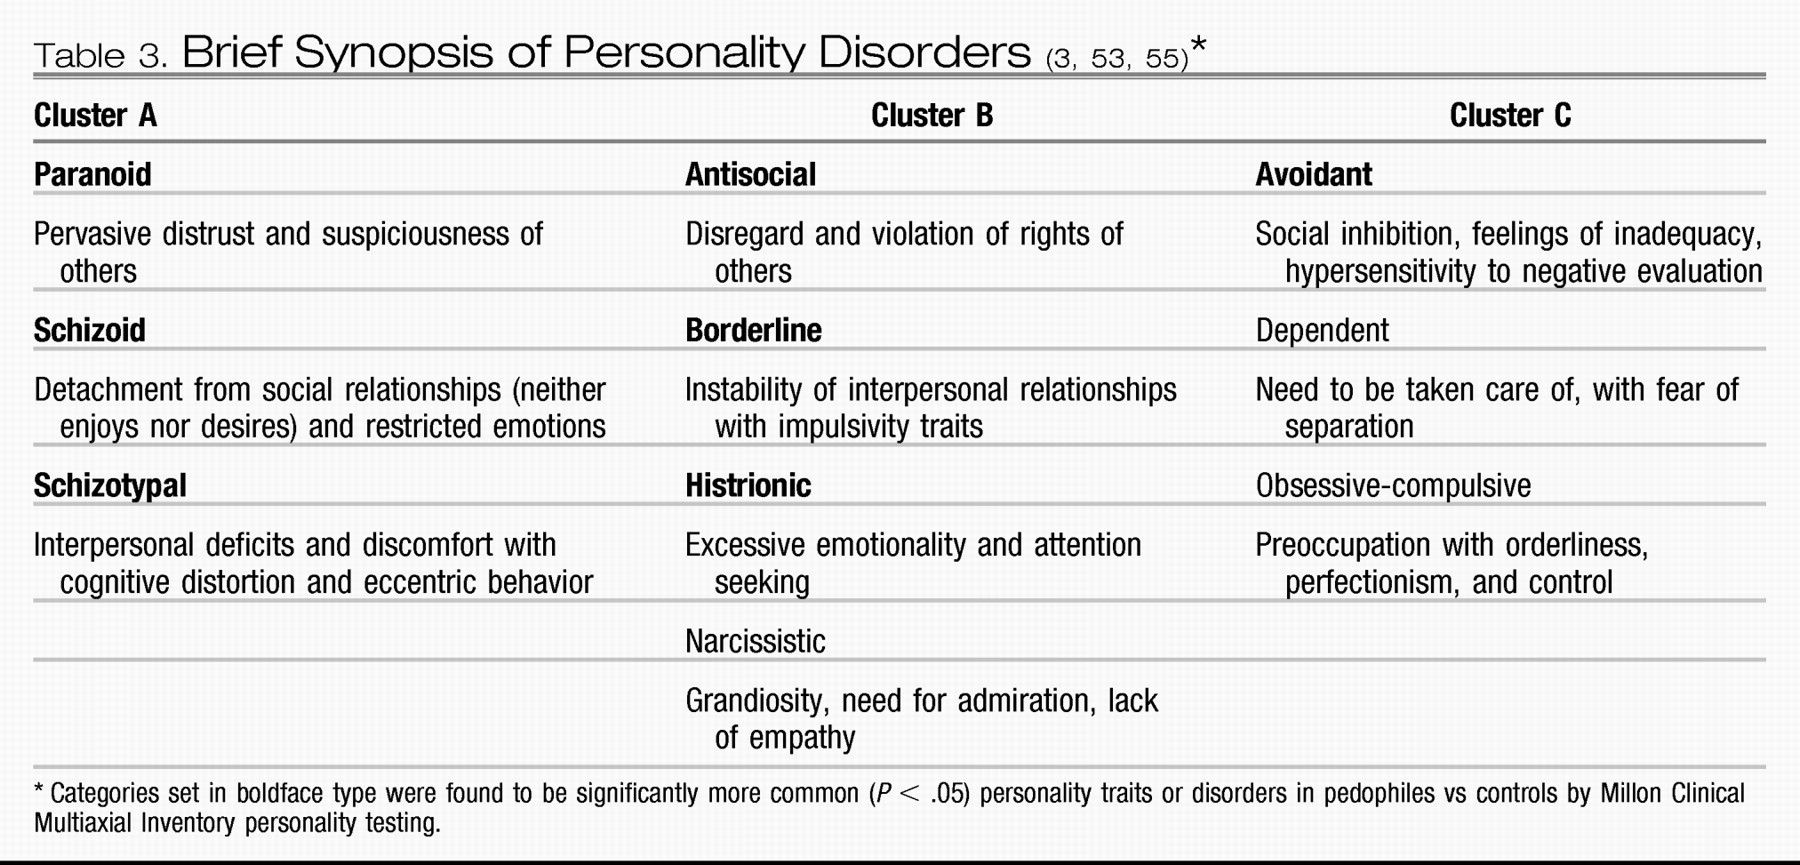 Brief Synopsis Of Personality Disorders